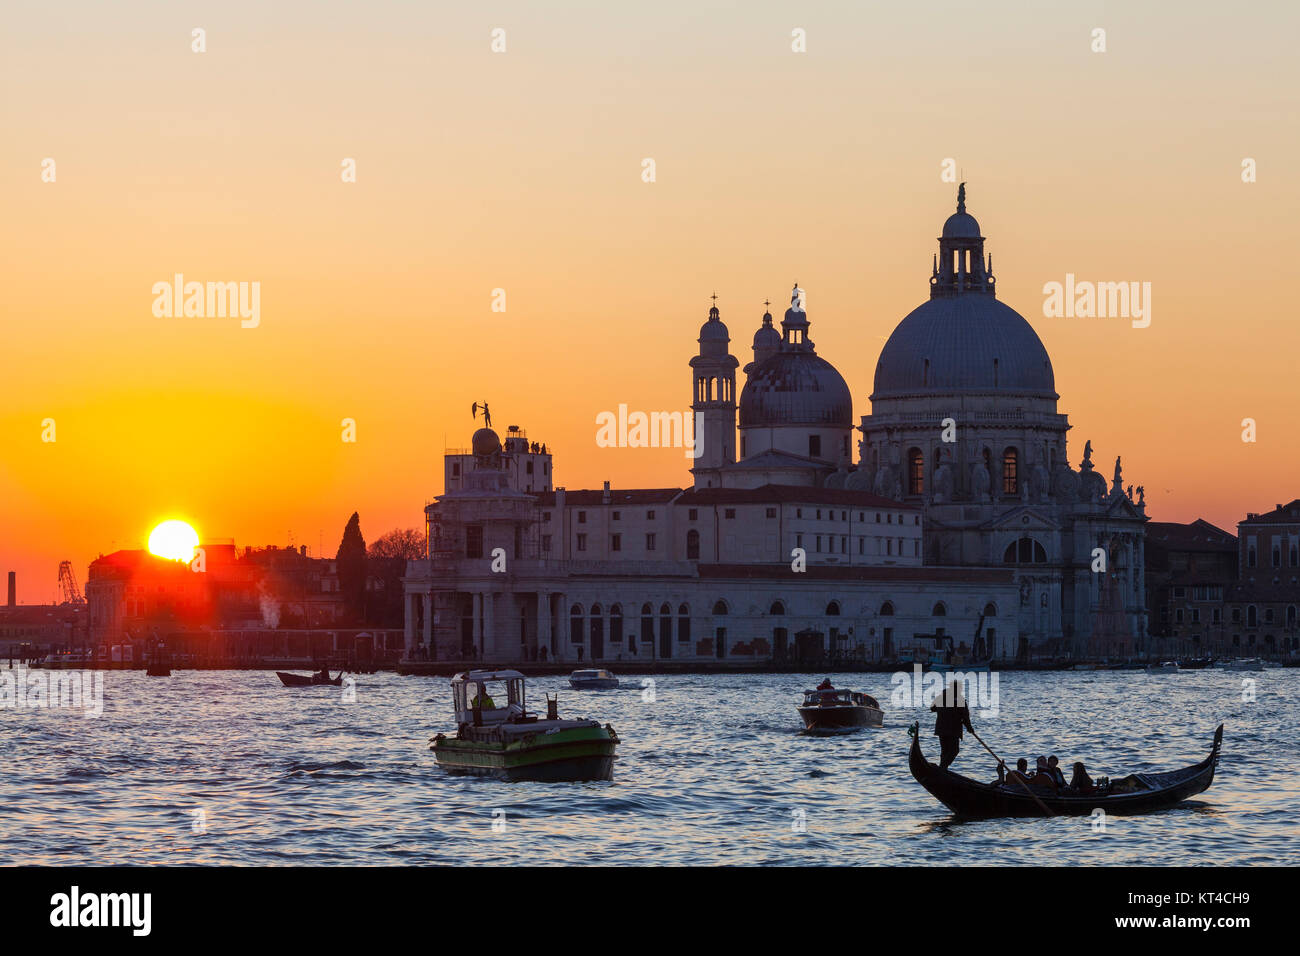 Colourful orange sunset over the Venice lagoon and Basilica di Santa Maria della Salute with boats and a gondola with tourists in the foreground Stock Photo